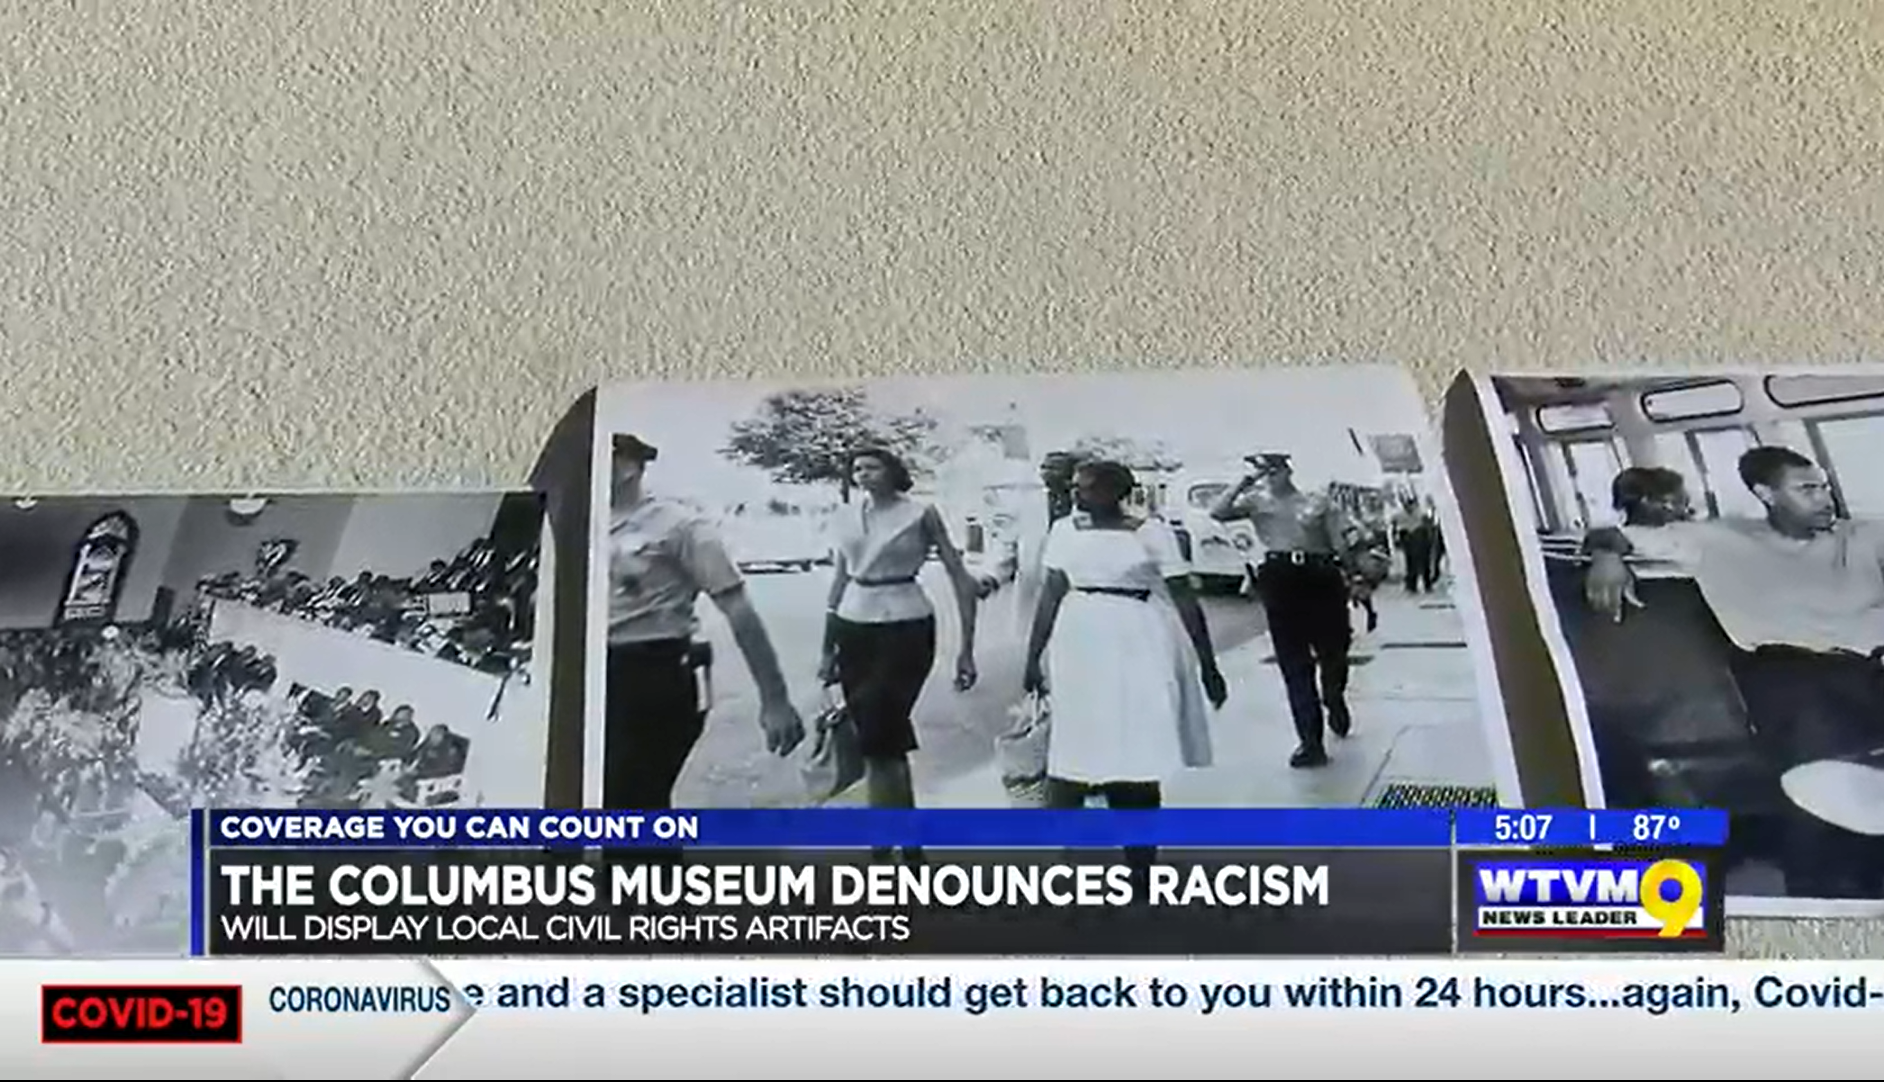 Columbus Museum speaks out against racial injustice; displaying local civil rights artifacts